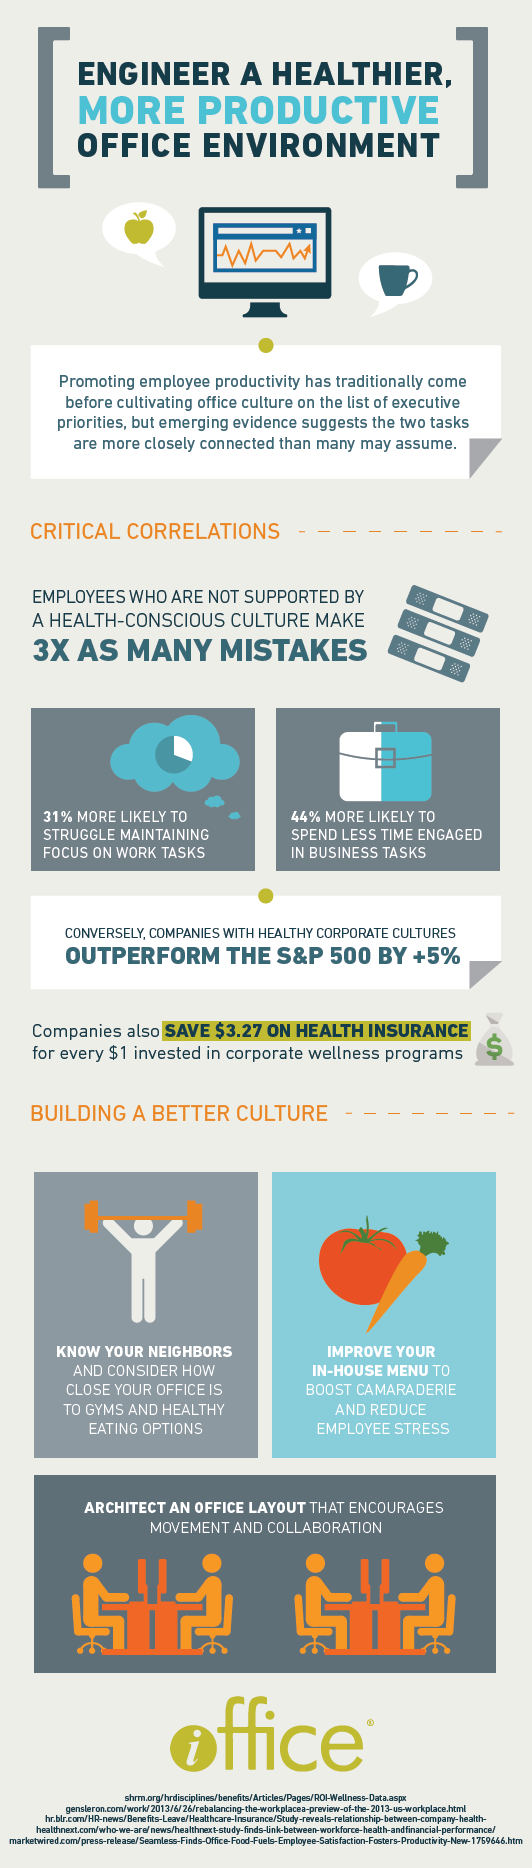 Infographics - Engineer a Healthier, More Productive Office Environment